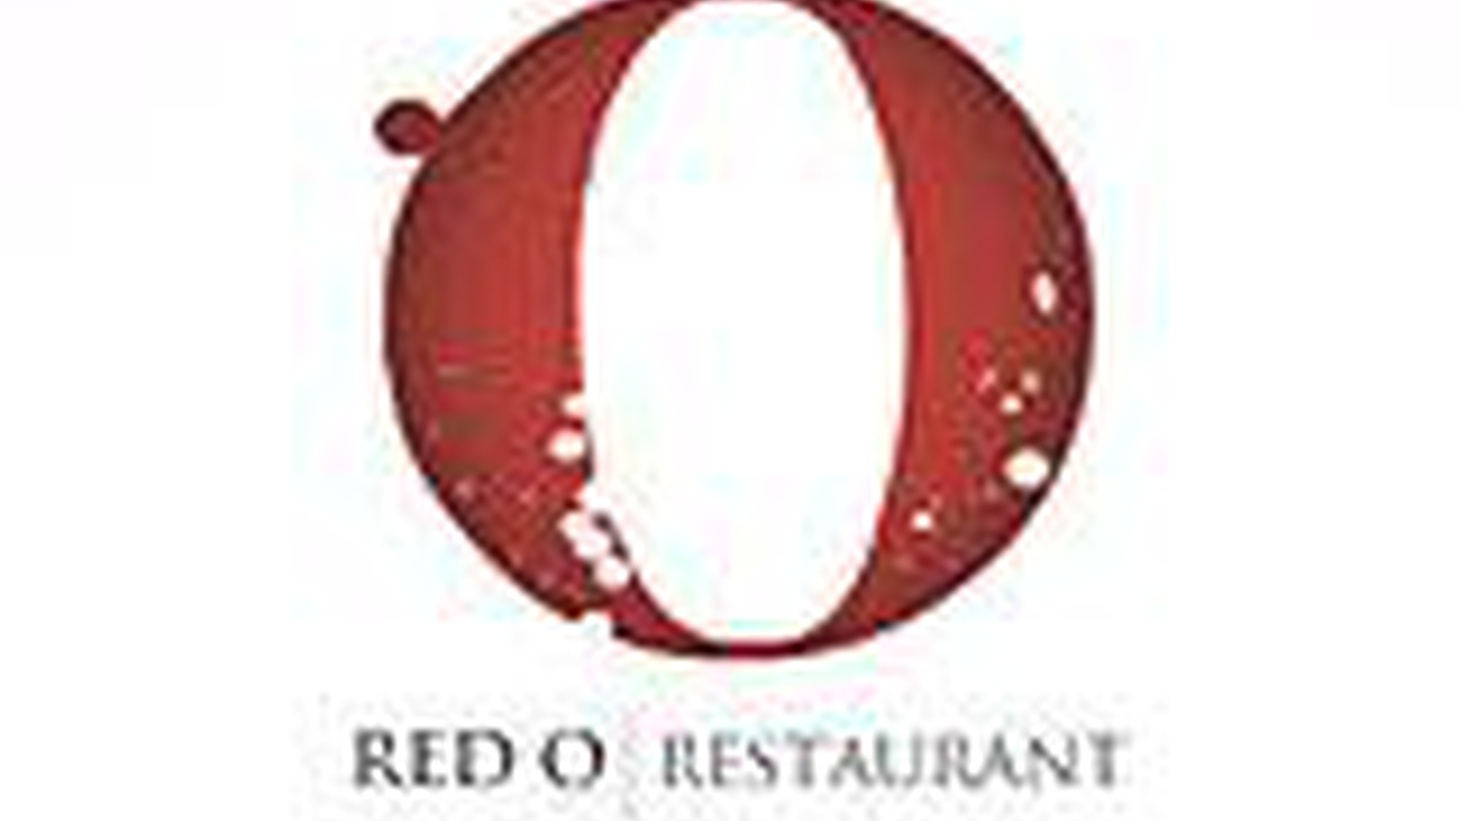 Jonathan Gold visits Red O, the new high-end Mexican restaurant from celebrity chef Rick Bayless...